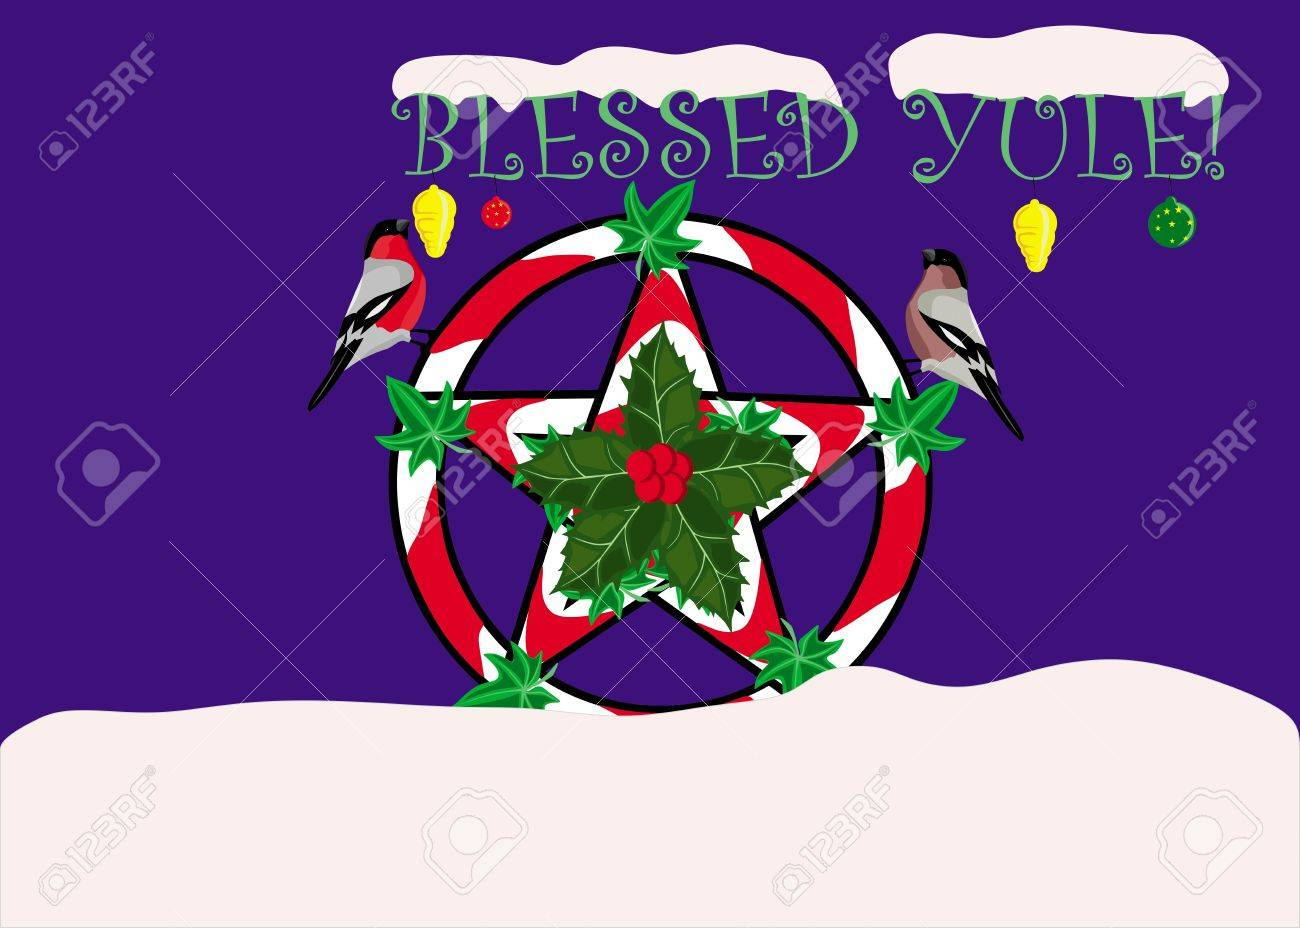 Yule greeting card Stock Vector - 15056758